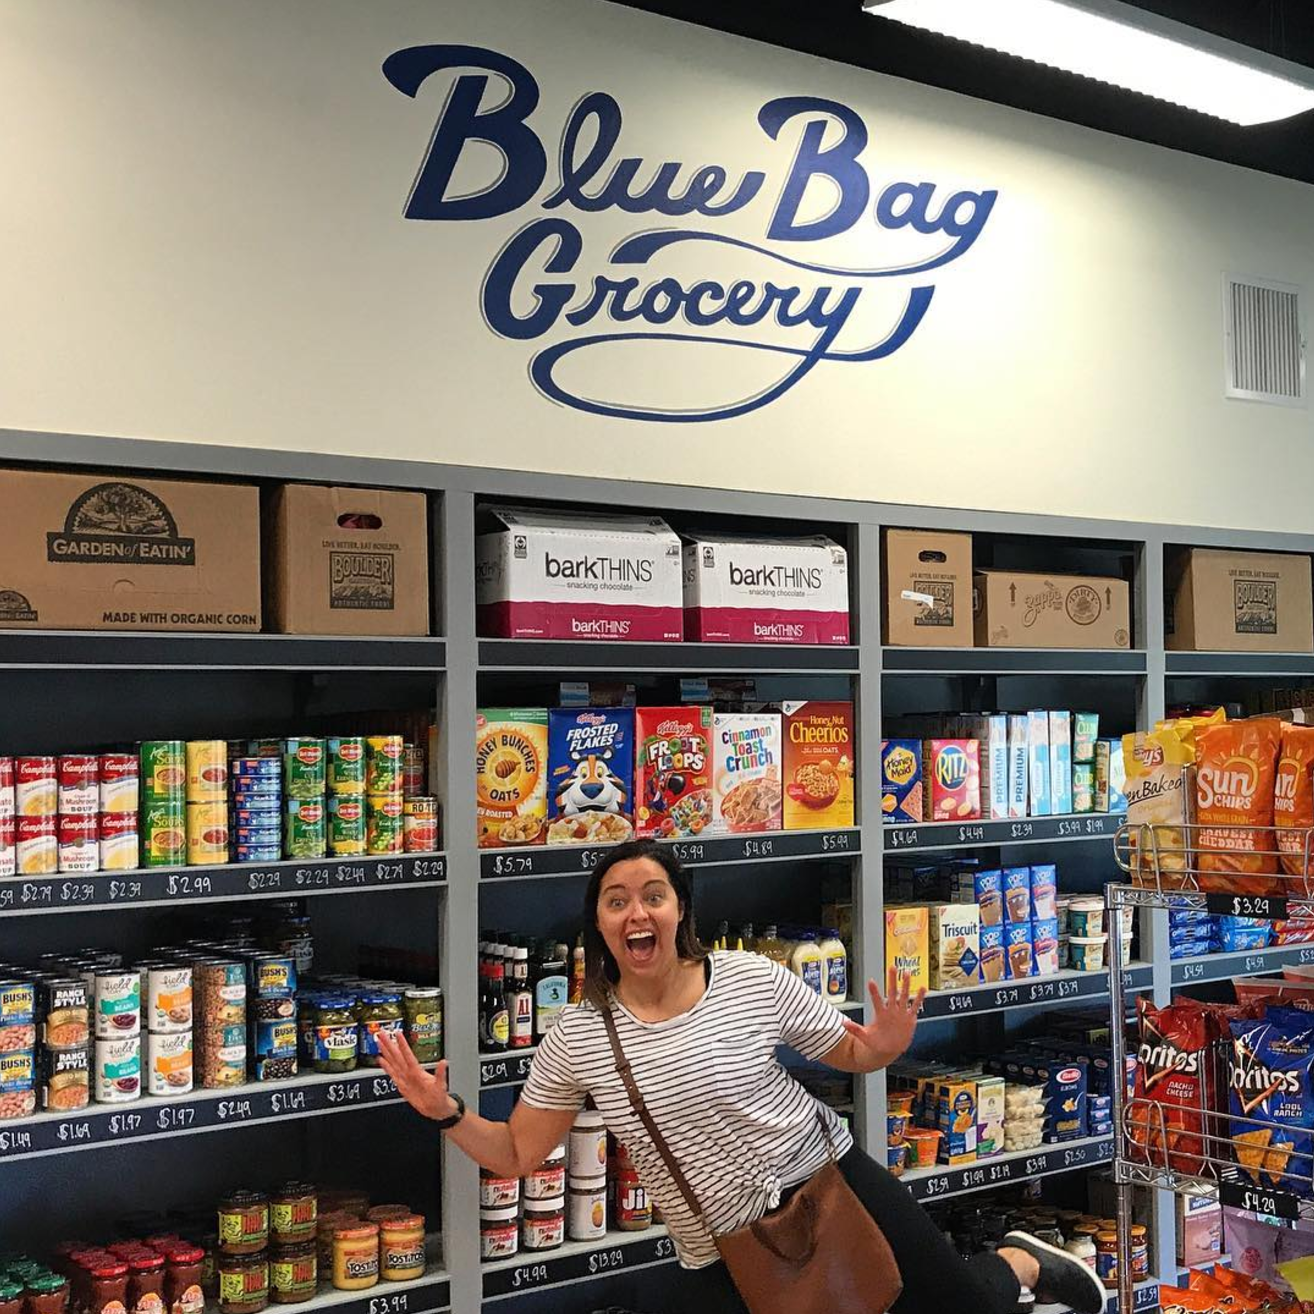 Downtown Denton now has a grocery store worth visiting. Check out Blue Bag Grocery on S. Locust! Photo by @glenfarris.